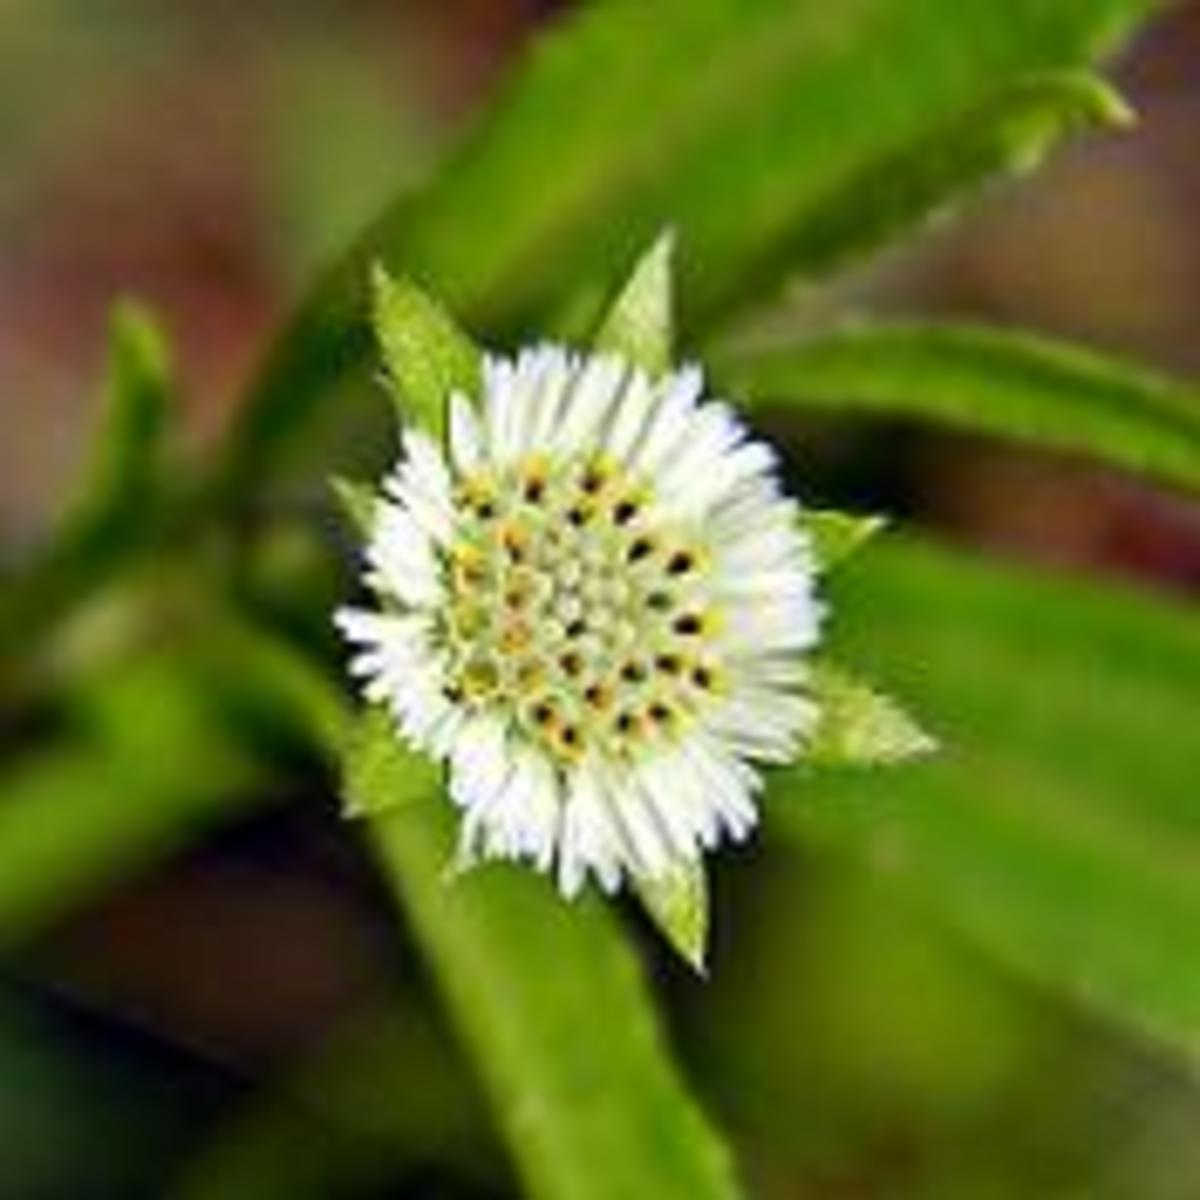 False Daisy Extract Soothes, Protects, and Heals the Skin